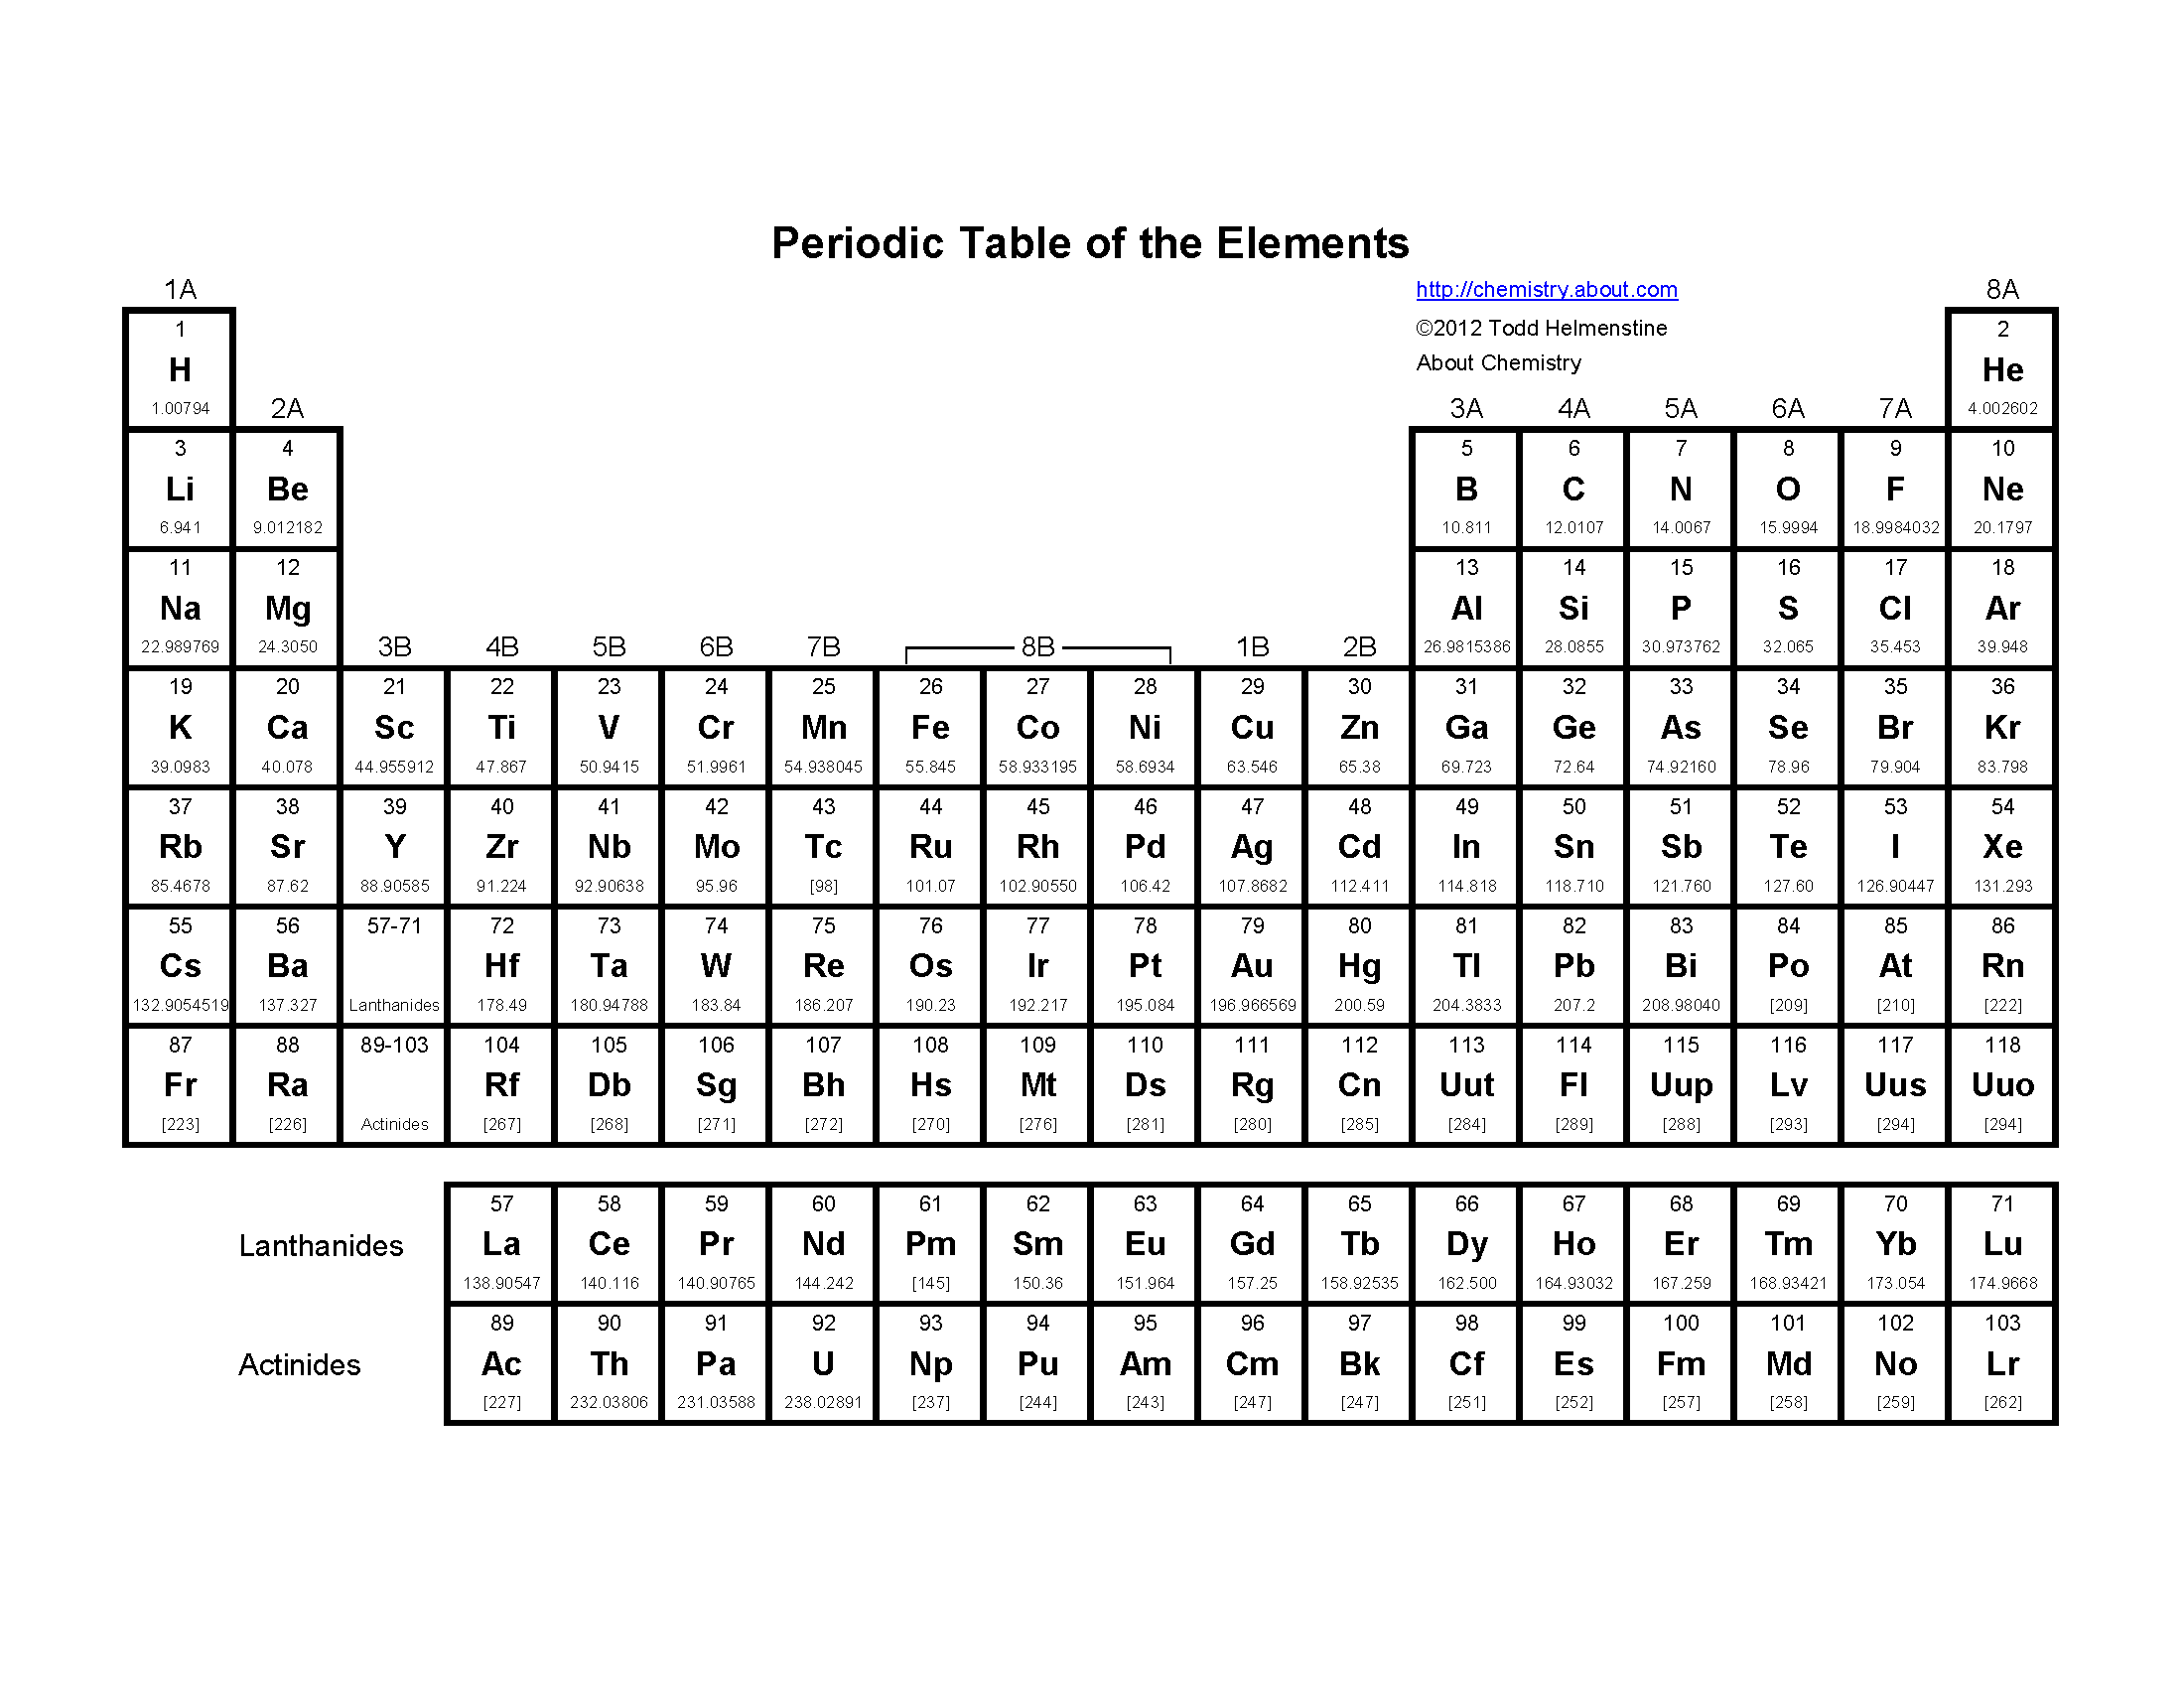 worksheet atomic mass and atomic number worksheet basic printable periodic table of the elements tableteaching scienceatomic - Periodic Table Of Elements Quiz 1 18